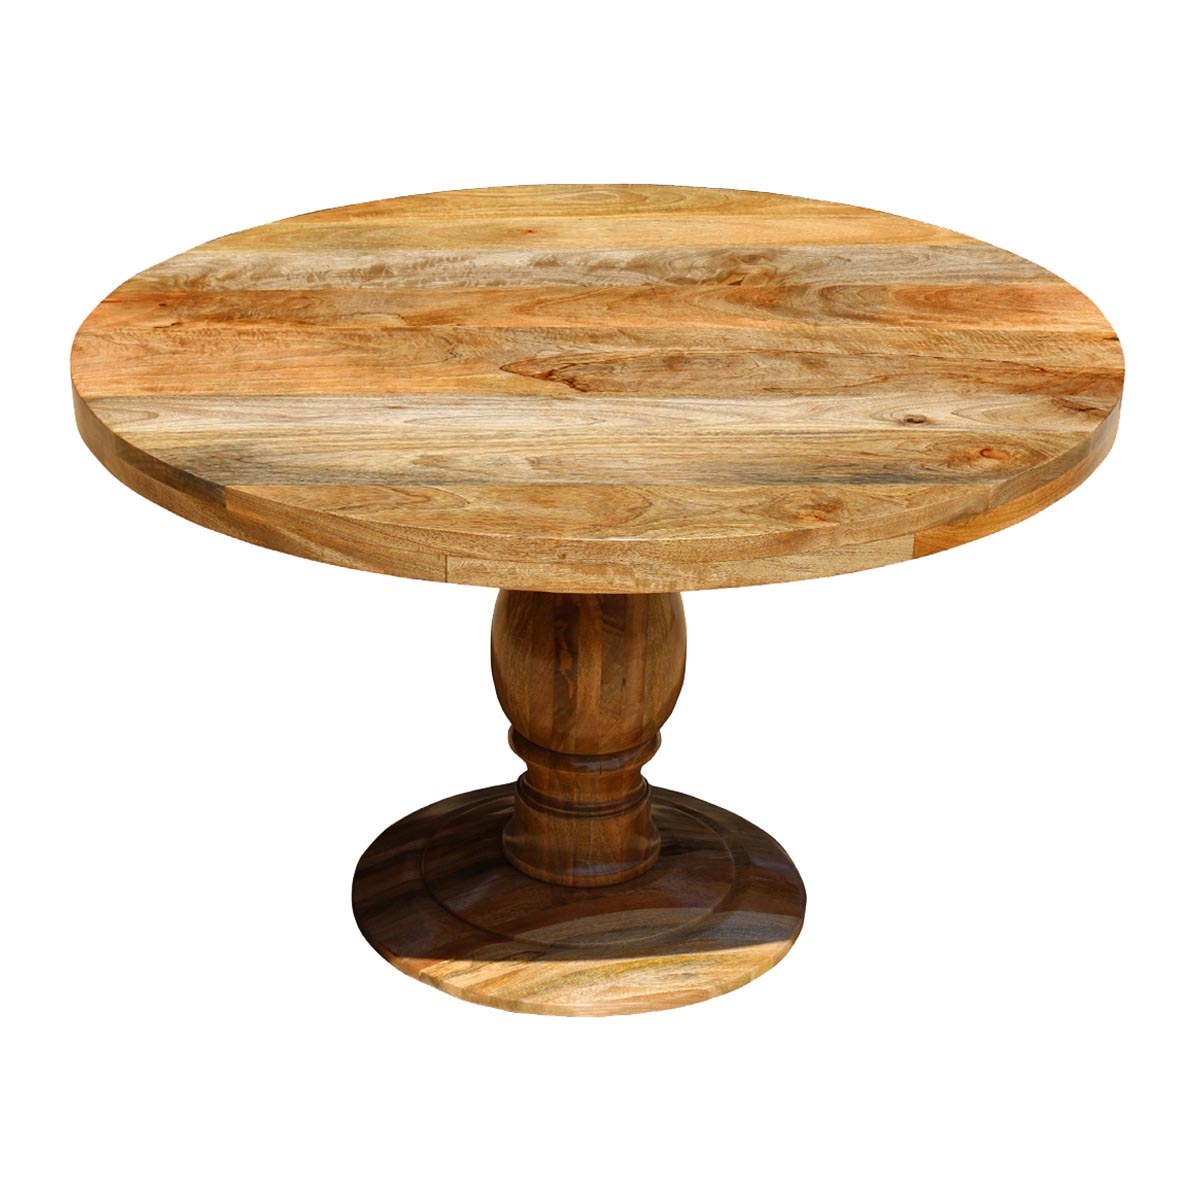 gold accent furniture the outrageous amazing mango wood end table rustic round pedestal dining patio lounge with built usb port sofa arm tray baker milling road small desk chairs